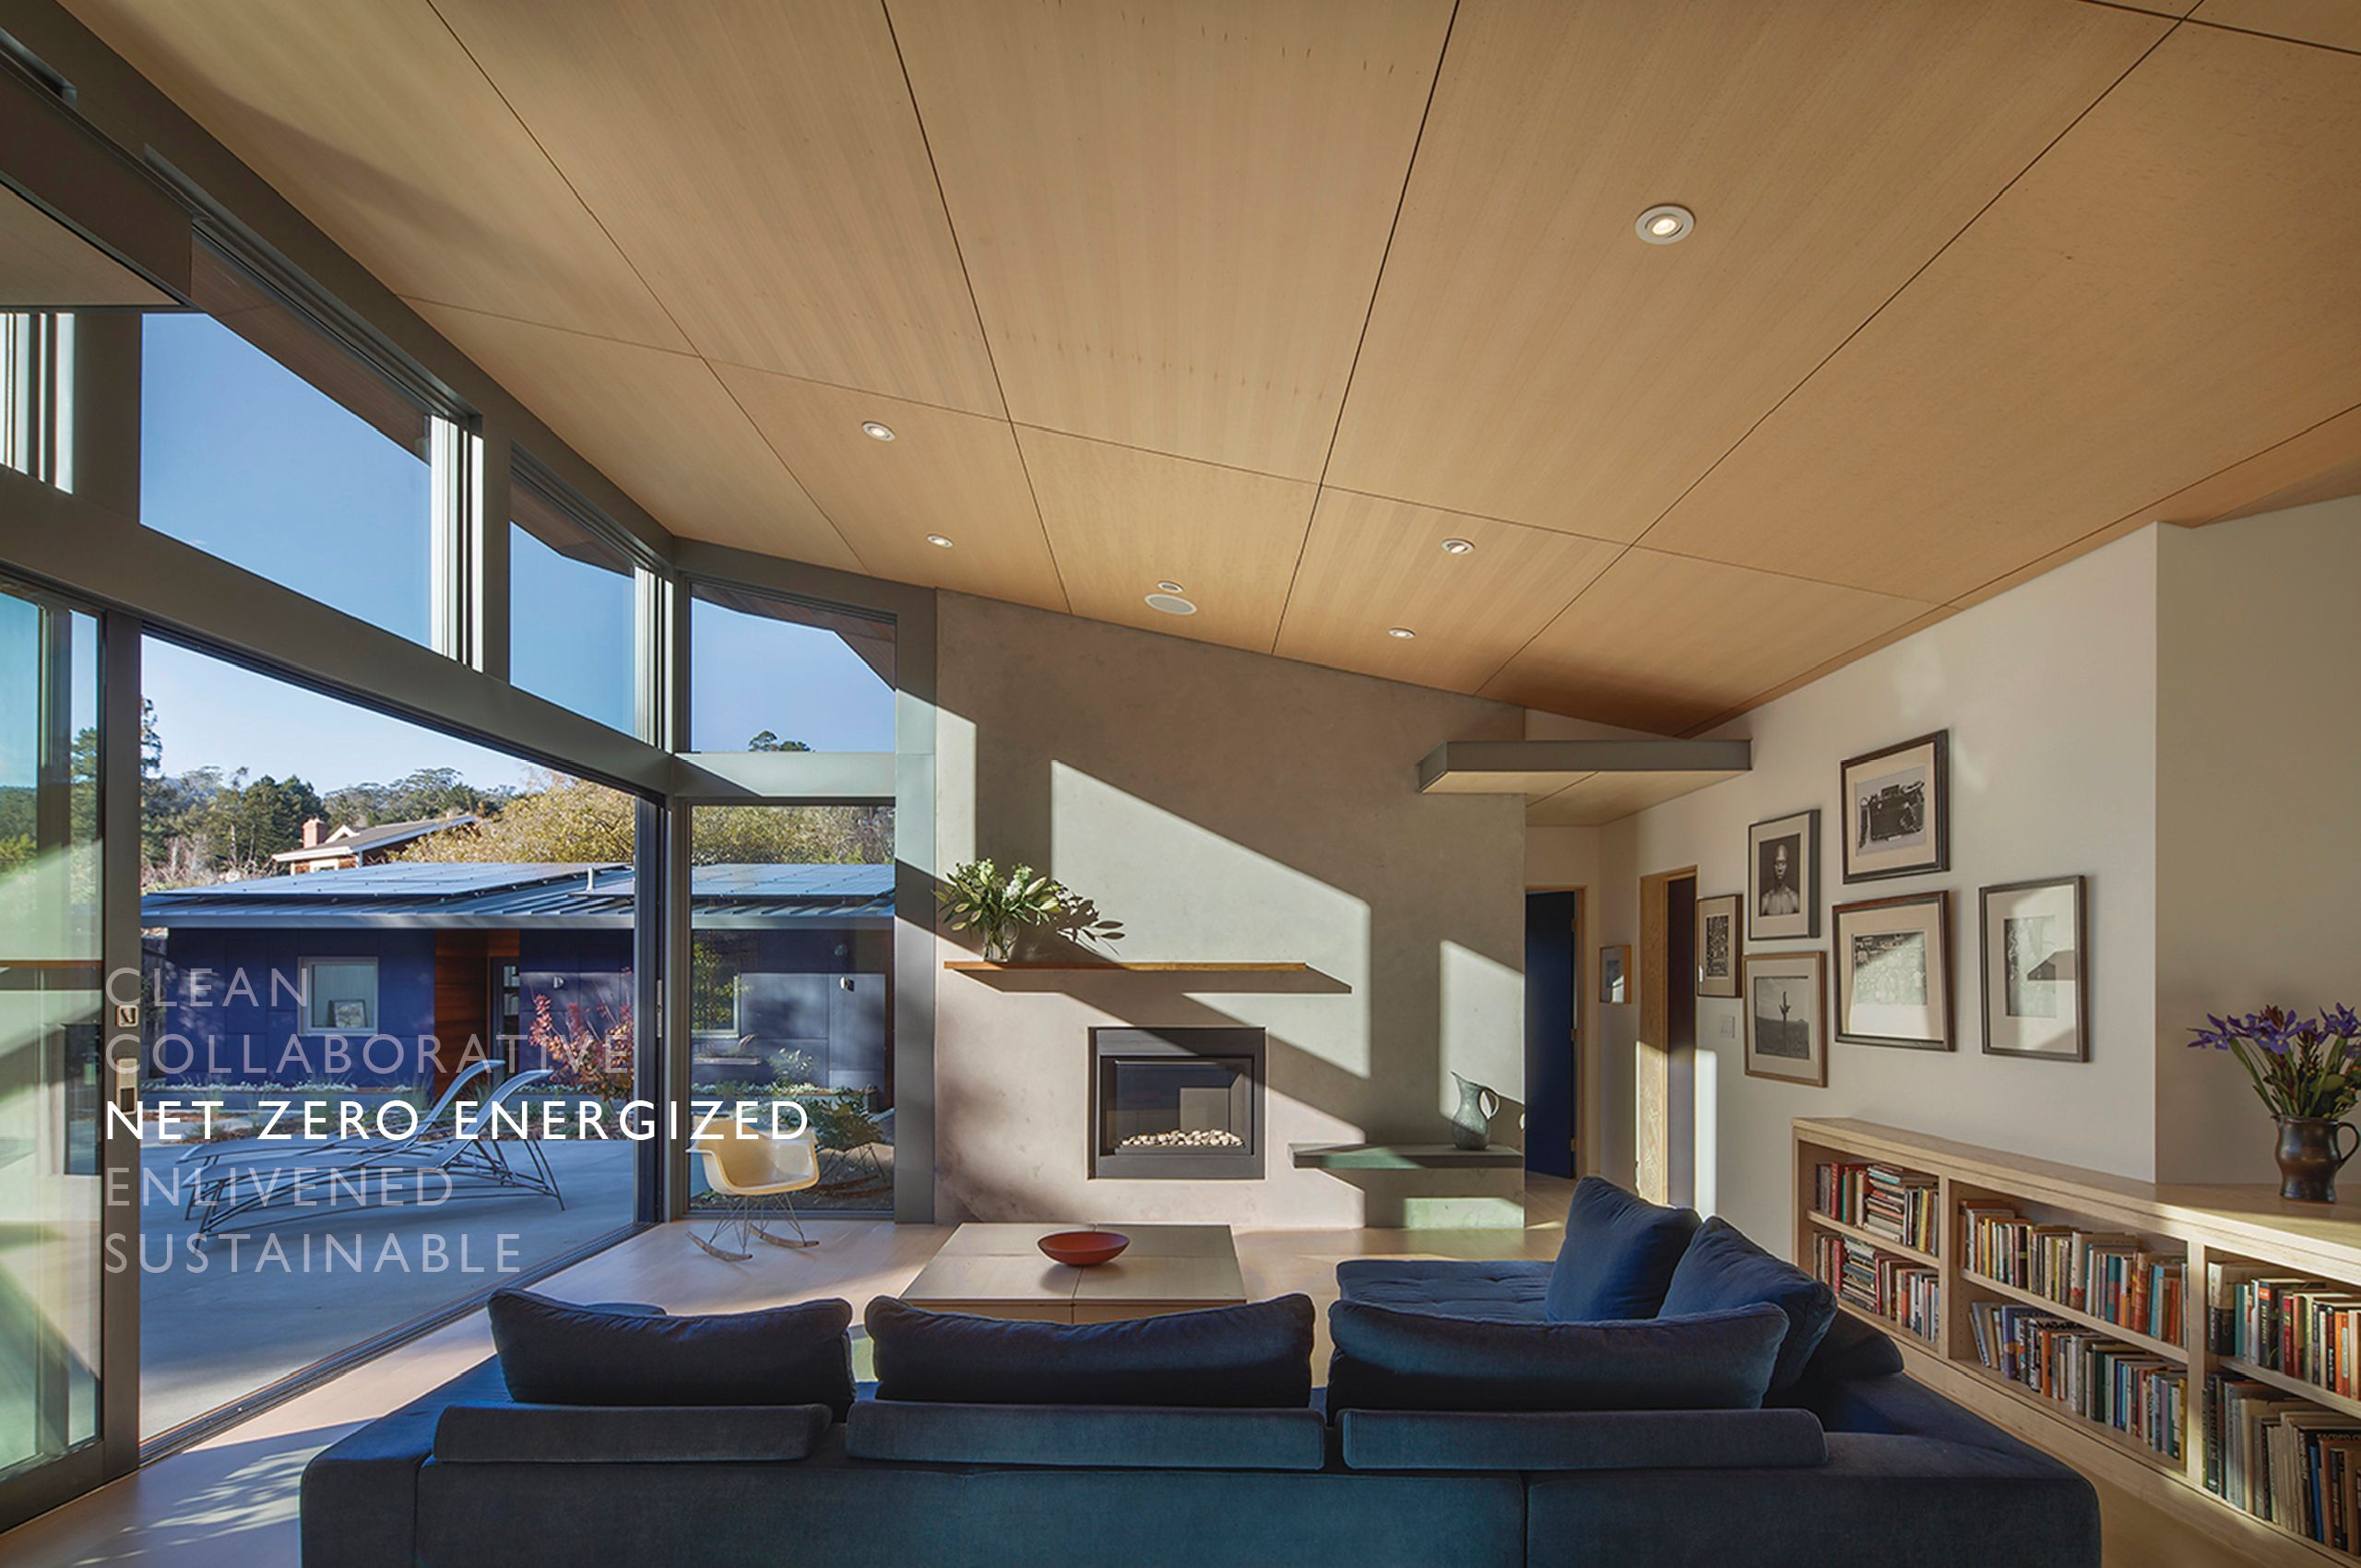 Net Zero Energy Homes in the San Francisco Bay Area